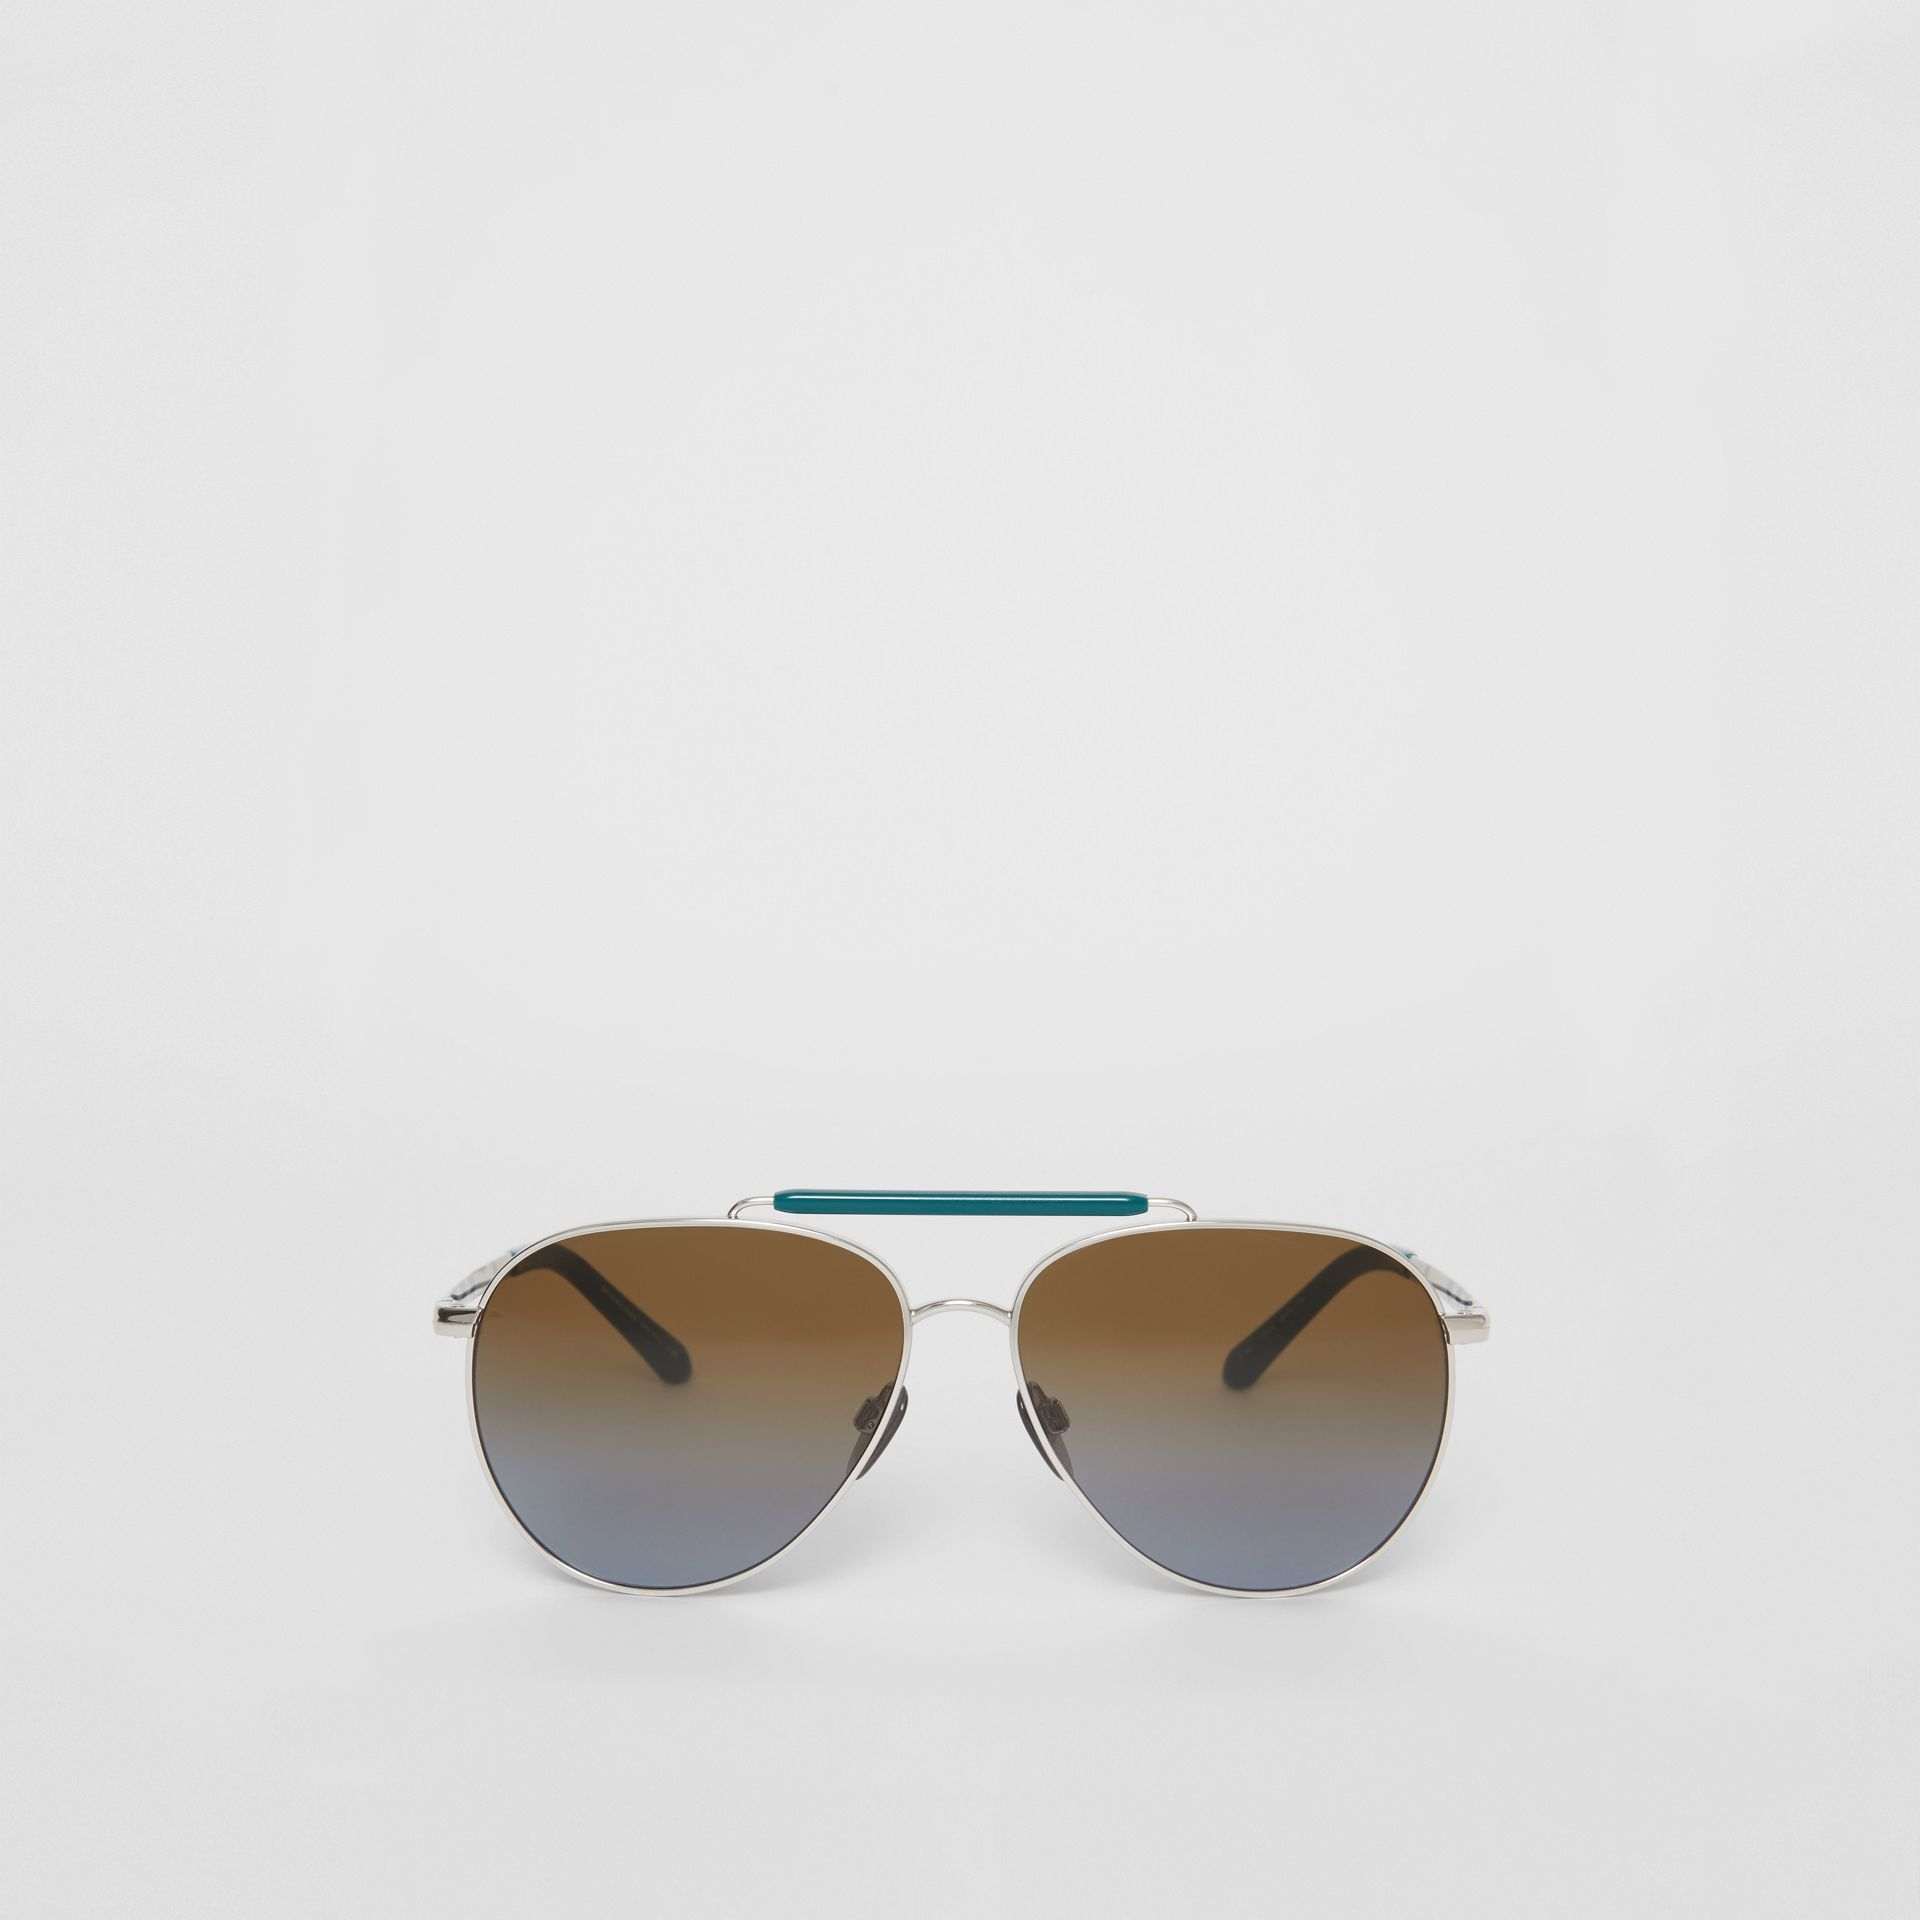 Top Bar Detail Pilot Sunglasses in Teal Blue - Men | Burberry Singapore - gallery image 0